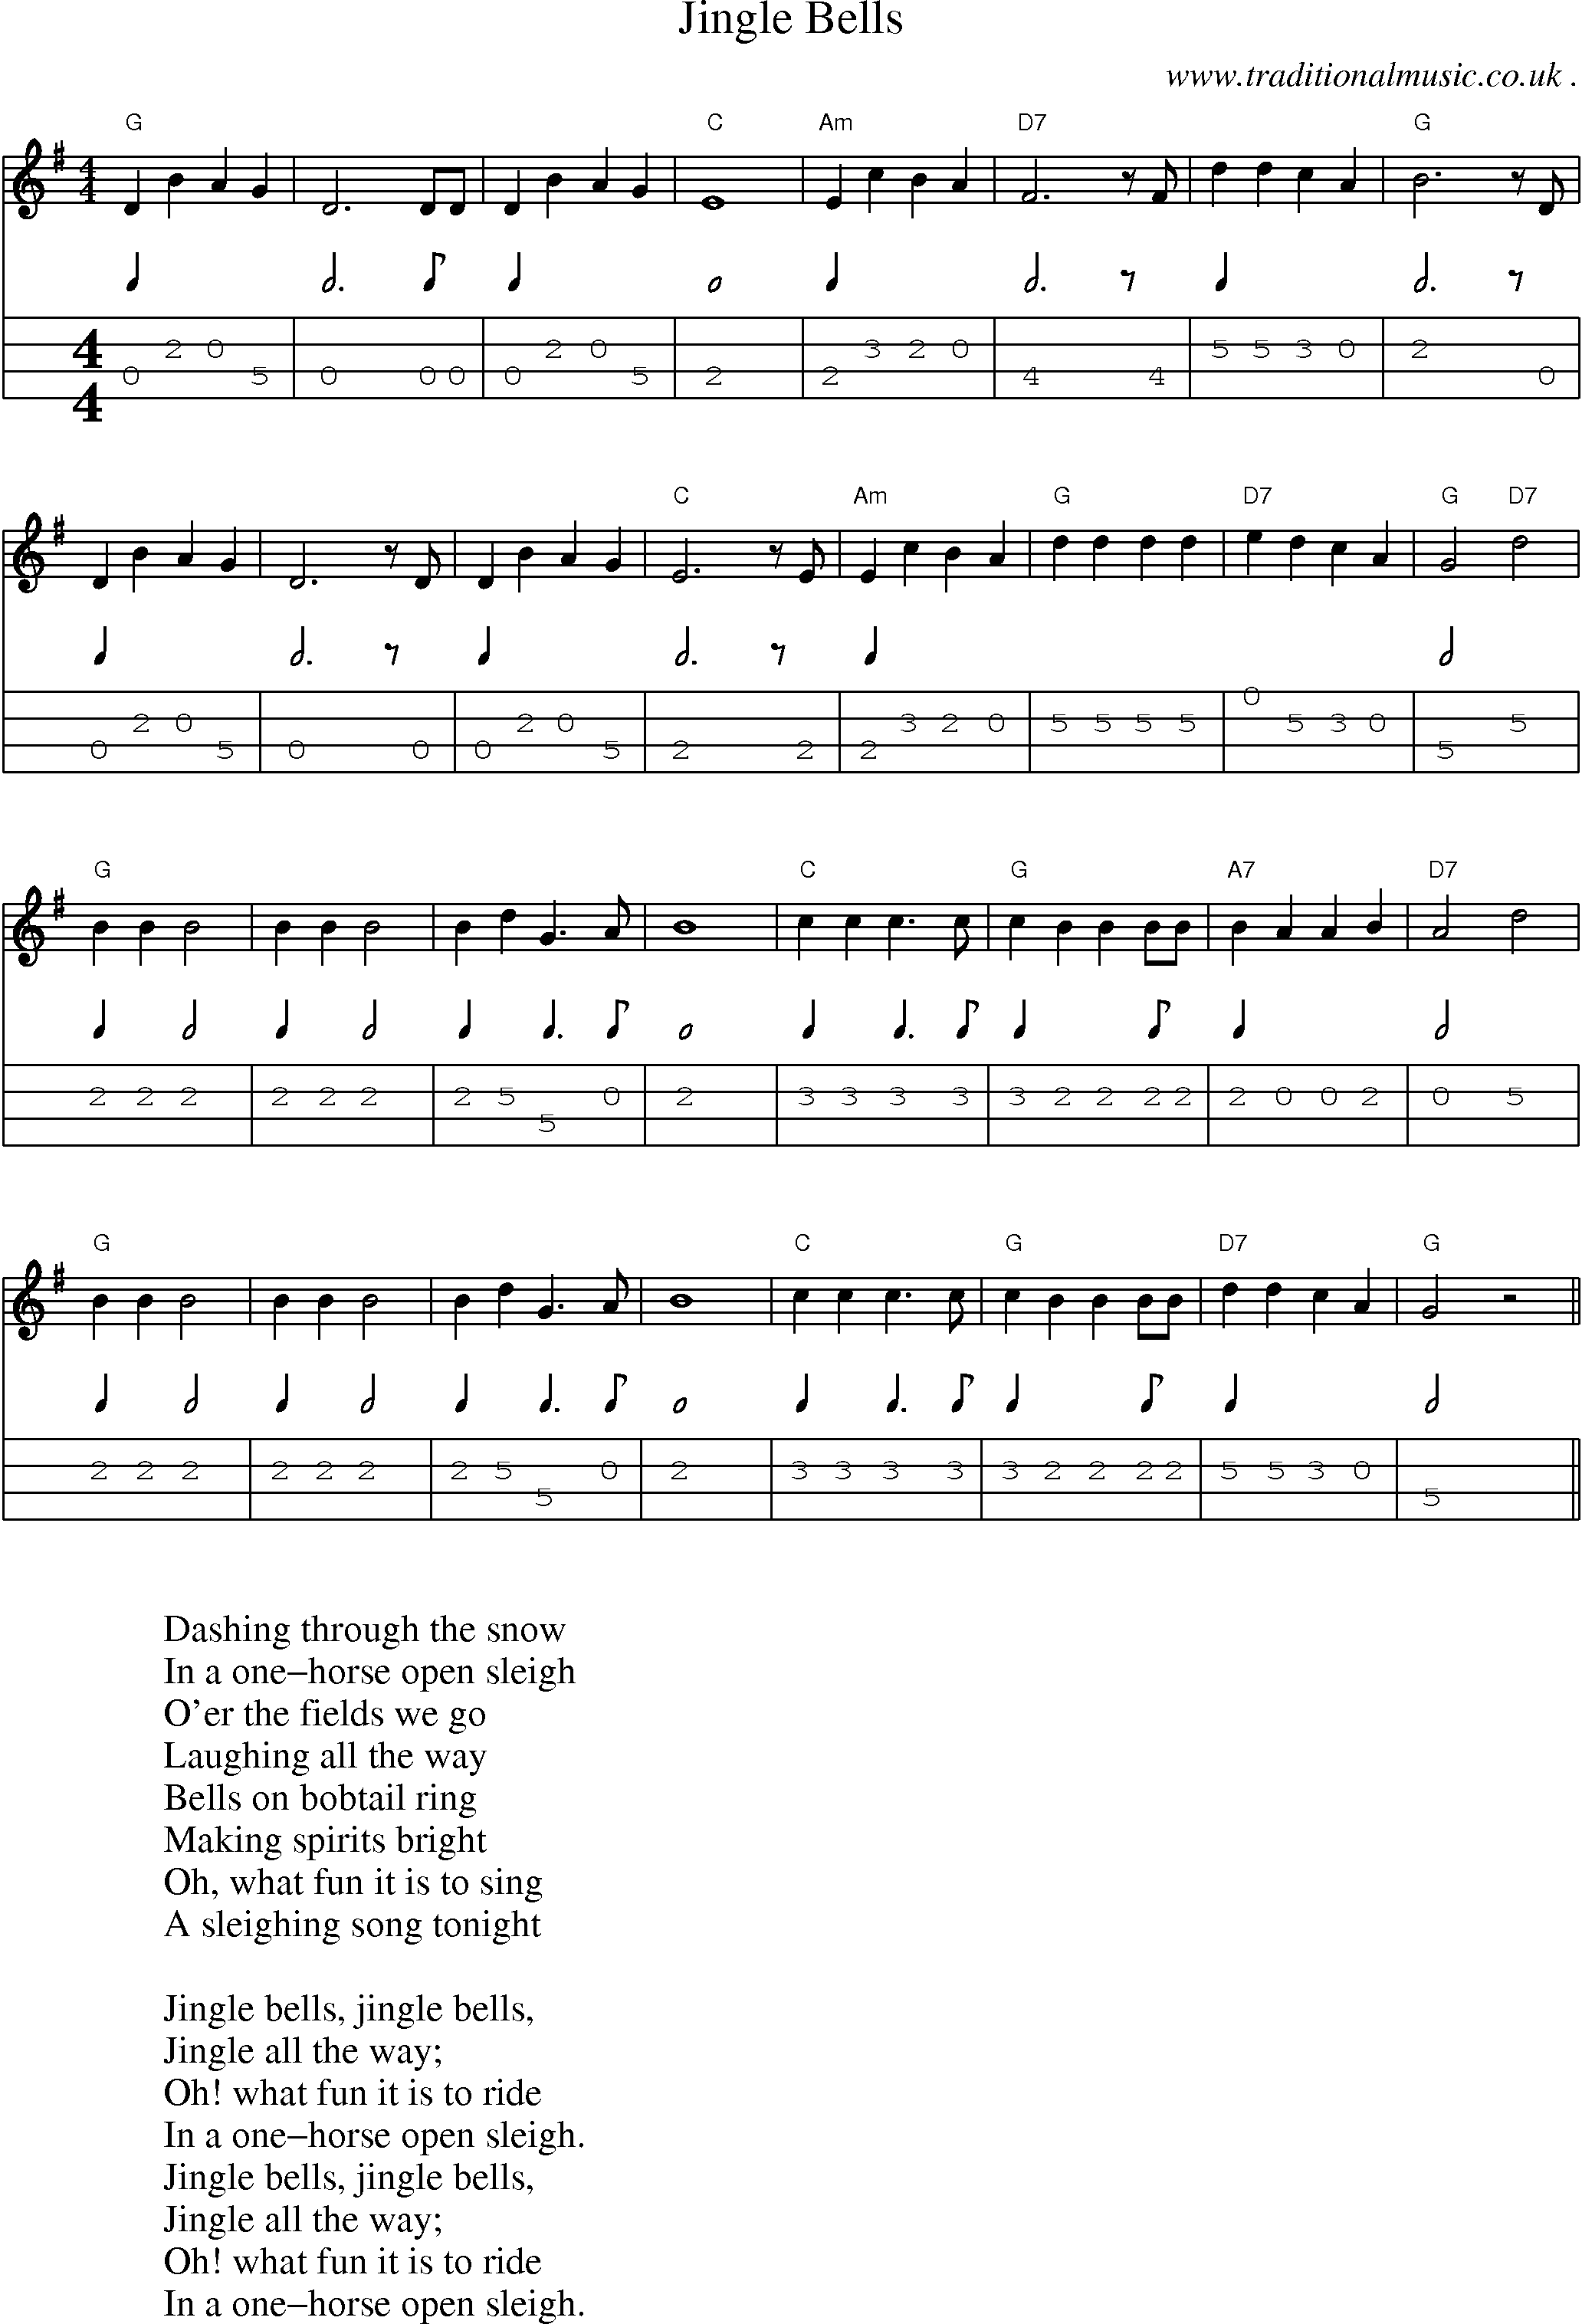 American Old-time music, Scores and Tabs for Mandolin - Jingle Bells